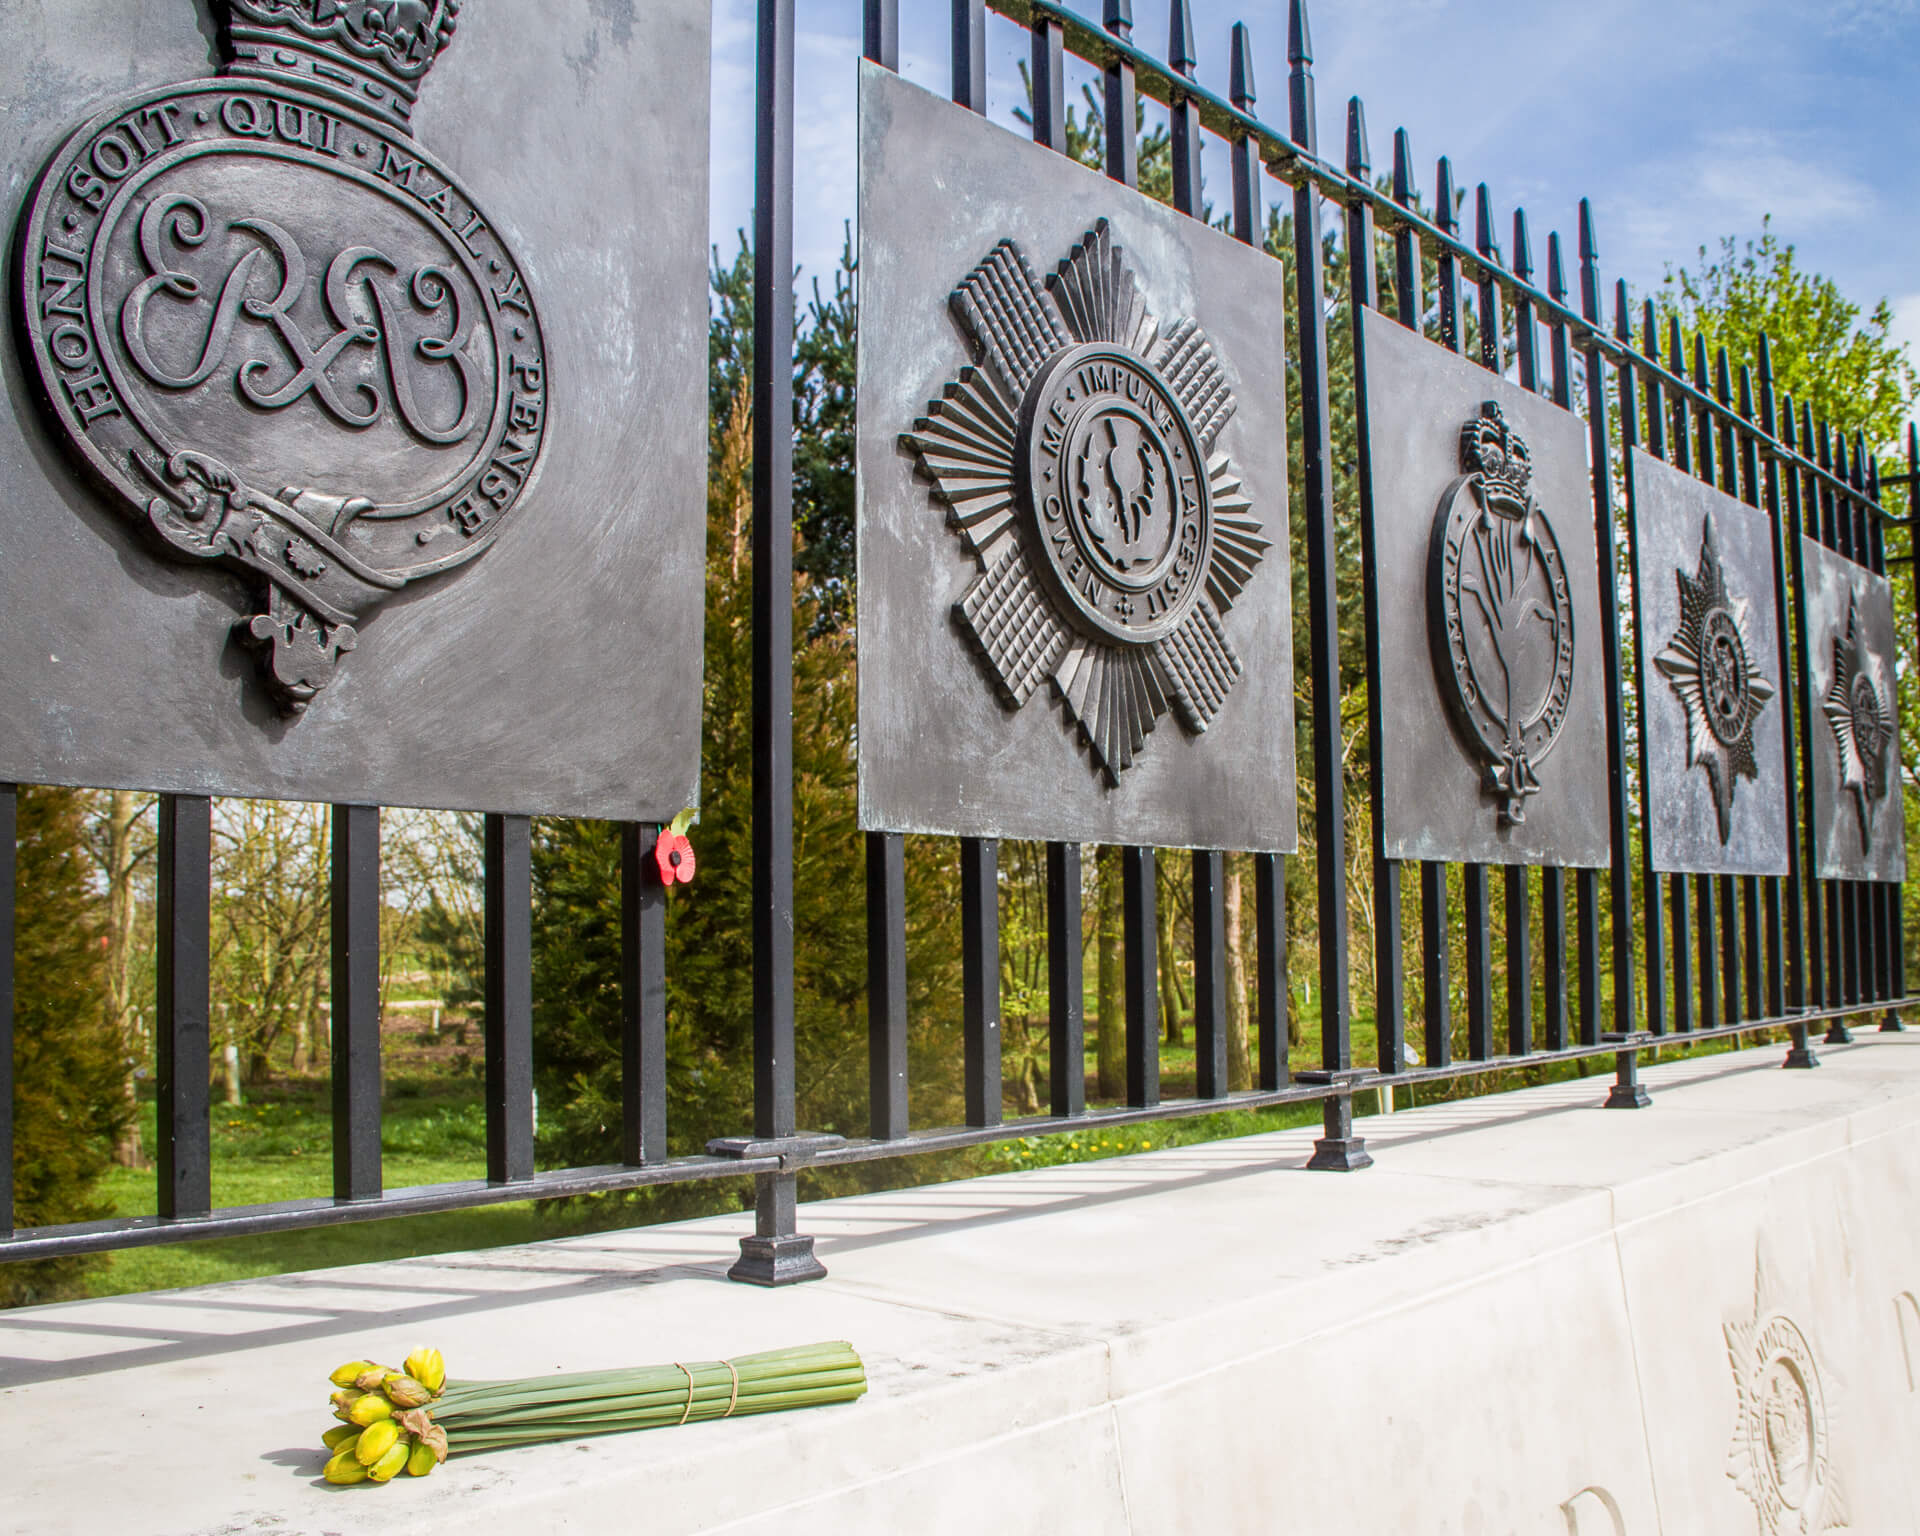 The decorative iron railings (which represent the railings at Wellington Barracks, London) seen here at the National Memorial Arboretum as part of the Household Division Memorial. In this colour image the 5 insignia of the Foot Regiments (as they line up on parade) can be seen; they are, The Grenadier Guards, The Scots Guards, The Welsh Guards, The Irish Guards, and The Coldstream Guards, underneath them is a small bunch of daffodils.